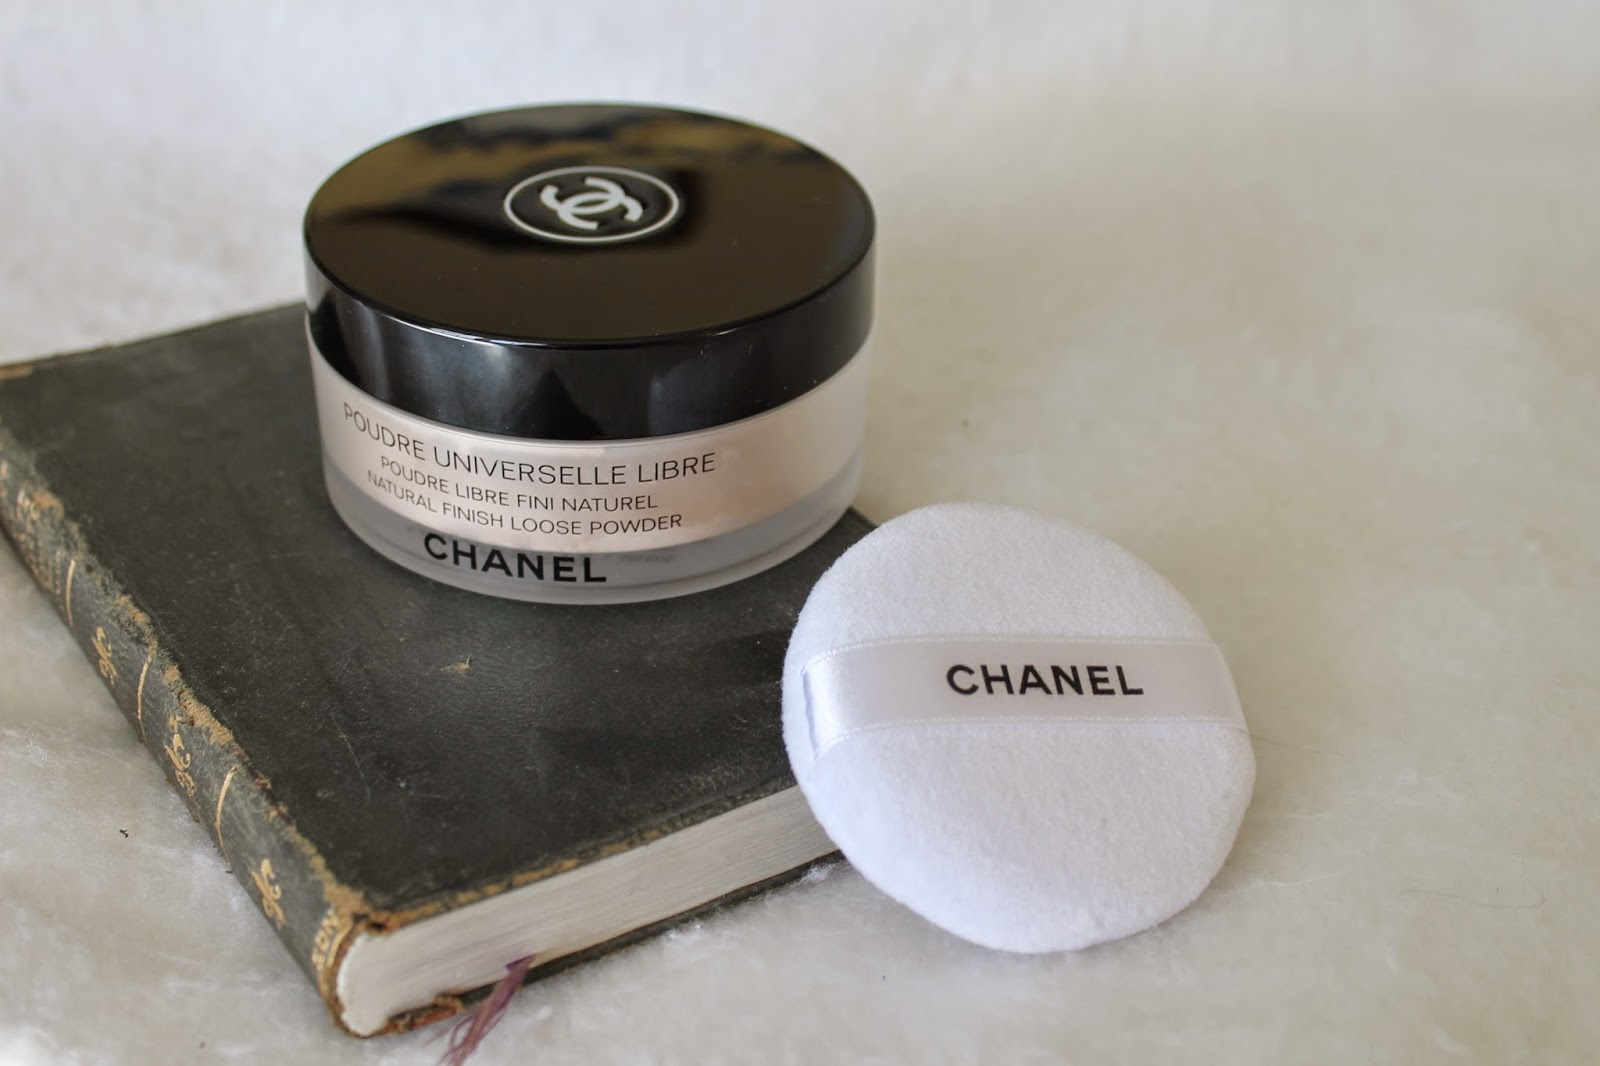 NEW IN FROM CHANEL